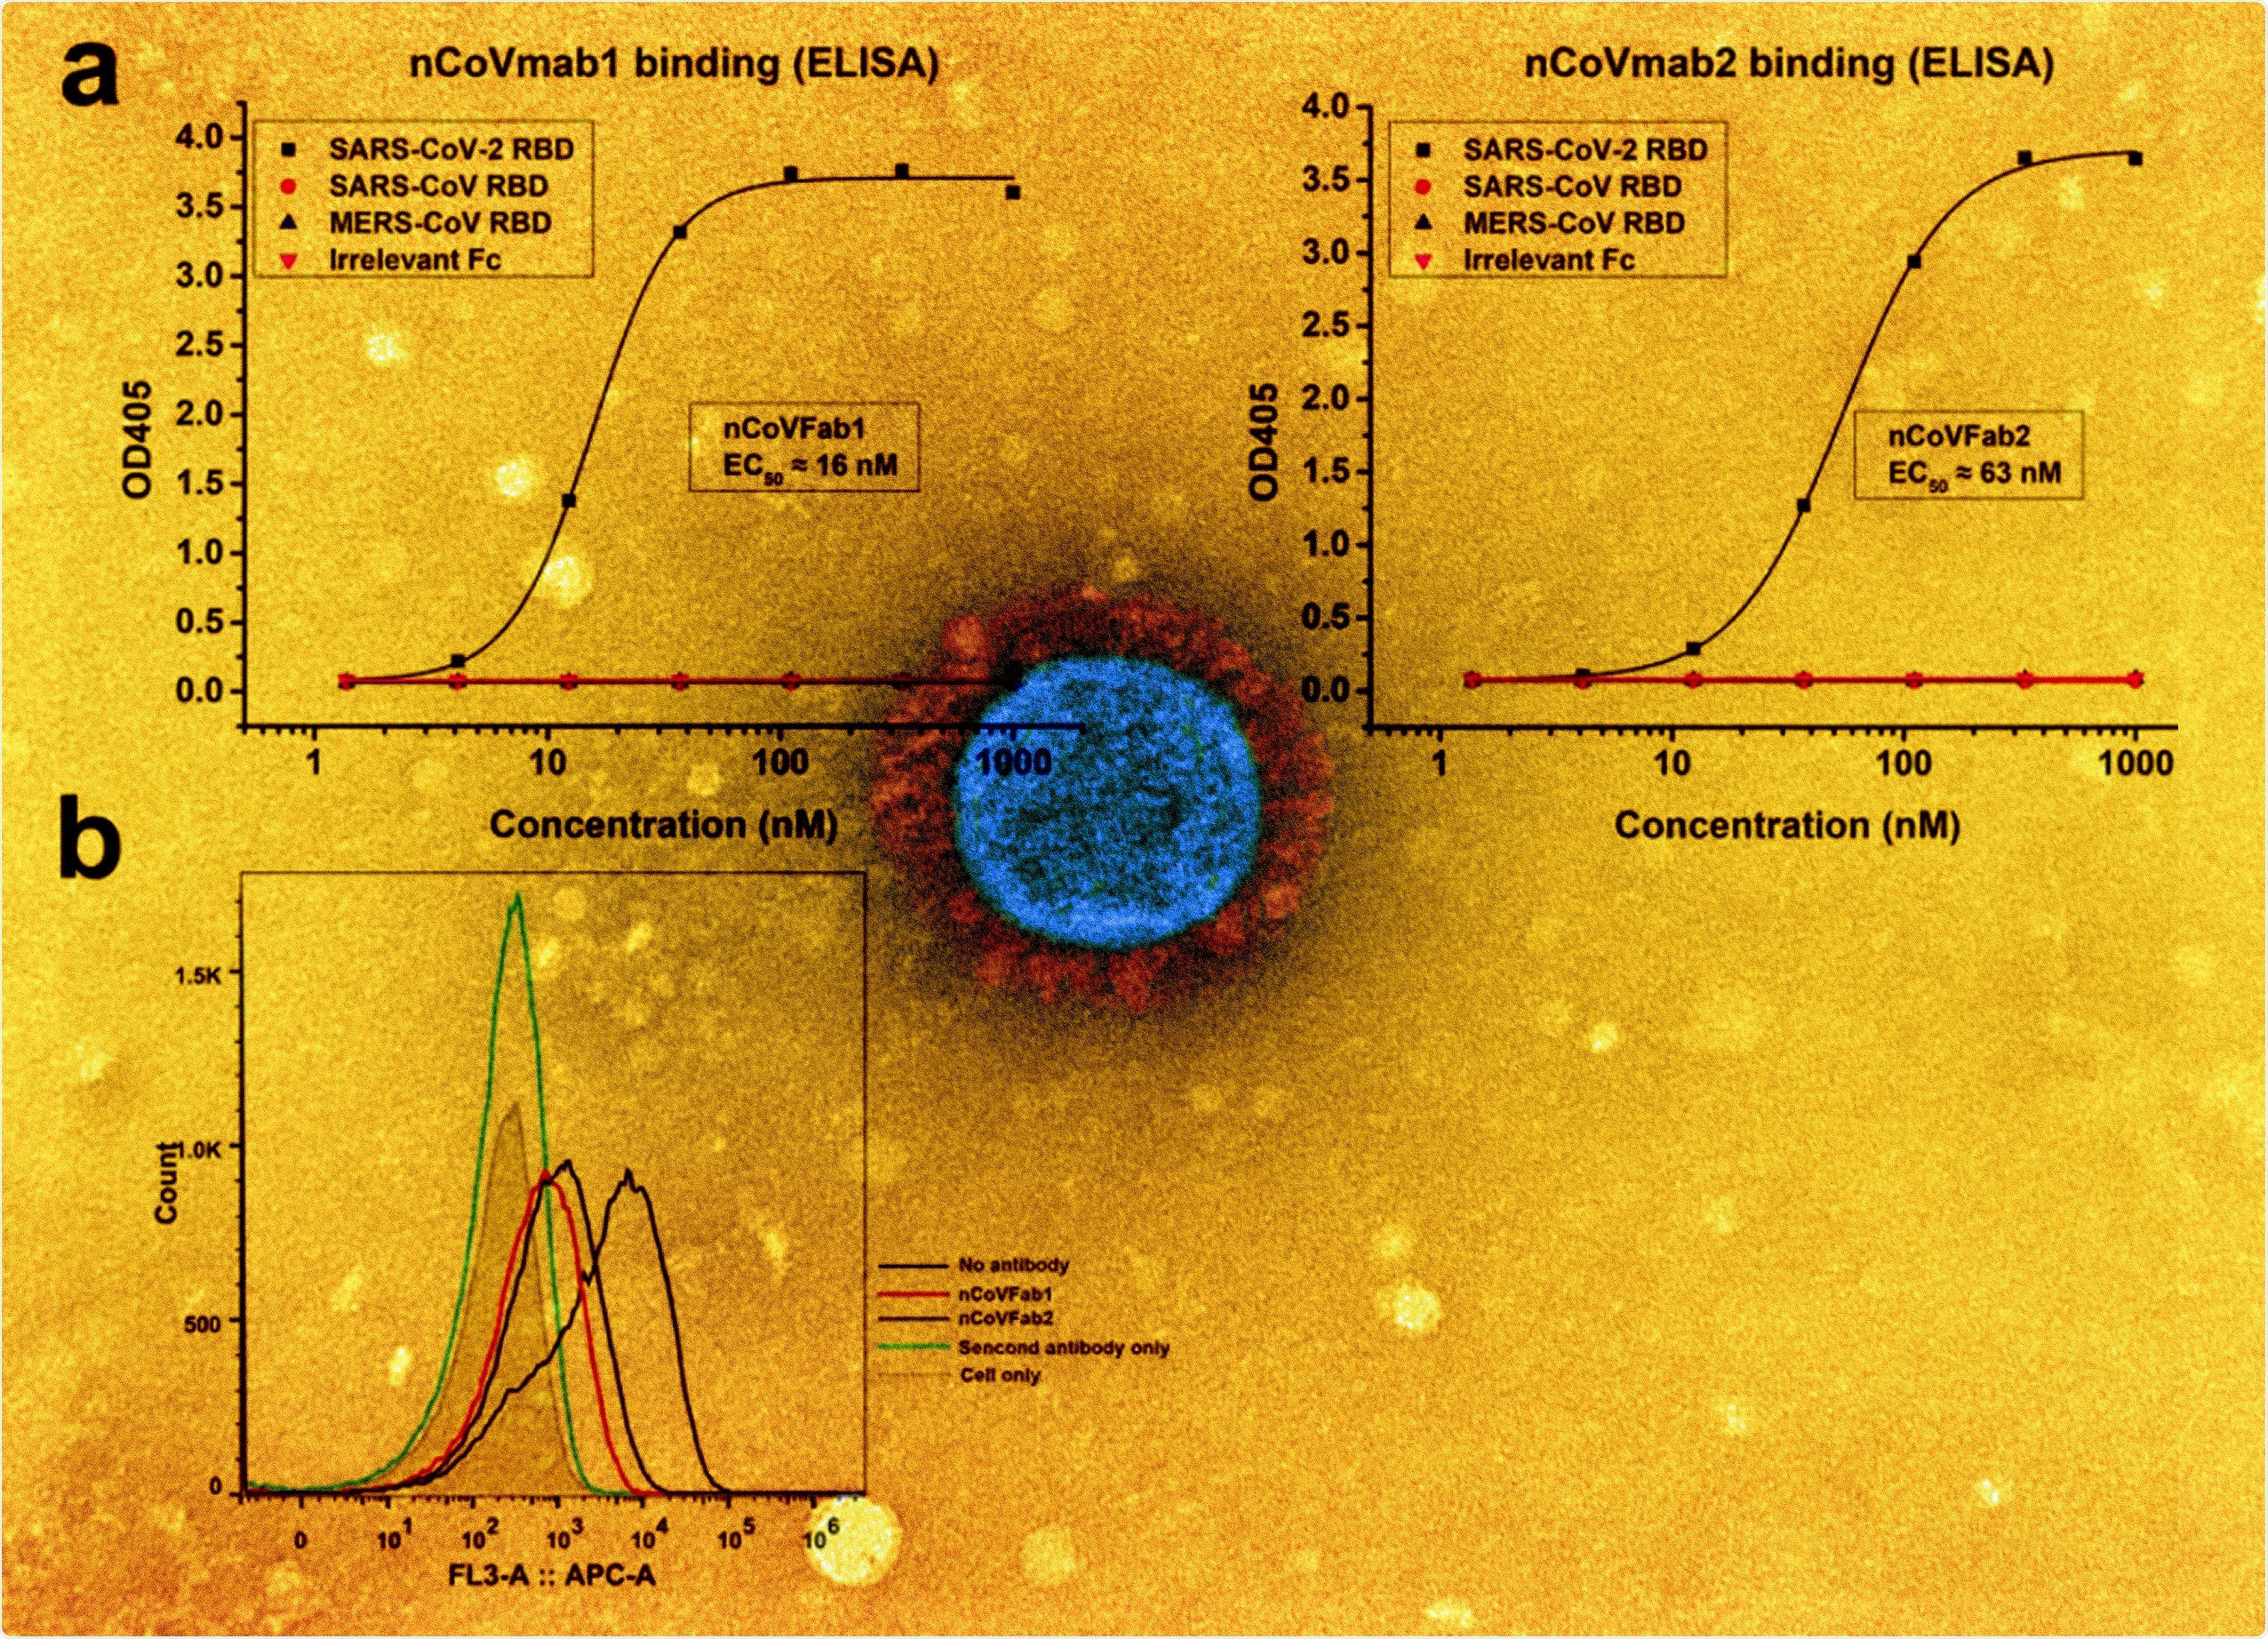 a Binding of nCoVFab1 and nCoVFab2 to different RBDs, as measured by an ELISA. RBD-Fc fusions of SARS-CoV-2, SARS-CoV, and MERS-CoV were used as antigens. Irrelevant Fc protein was used as a negative control. The experiments were performed independently twice and similar results were obtained. One representative experiment is shown and data are average values of two replicates. b Blockage of binding of SARS-CoV-2 RBD-Fc to Vero E6 cells by Fabs. nCoVFab1 and nCoVFab2 inhibited the binding fluorescence shift with efficiencies of approximately 89% and 82%, respectively, as measured by flow cytometry.